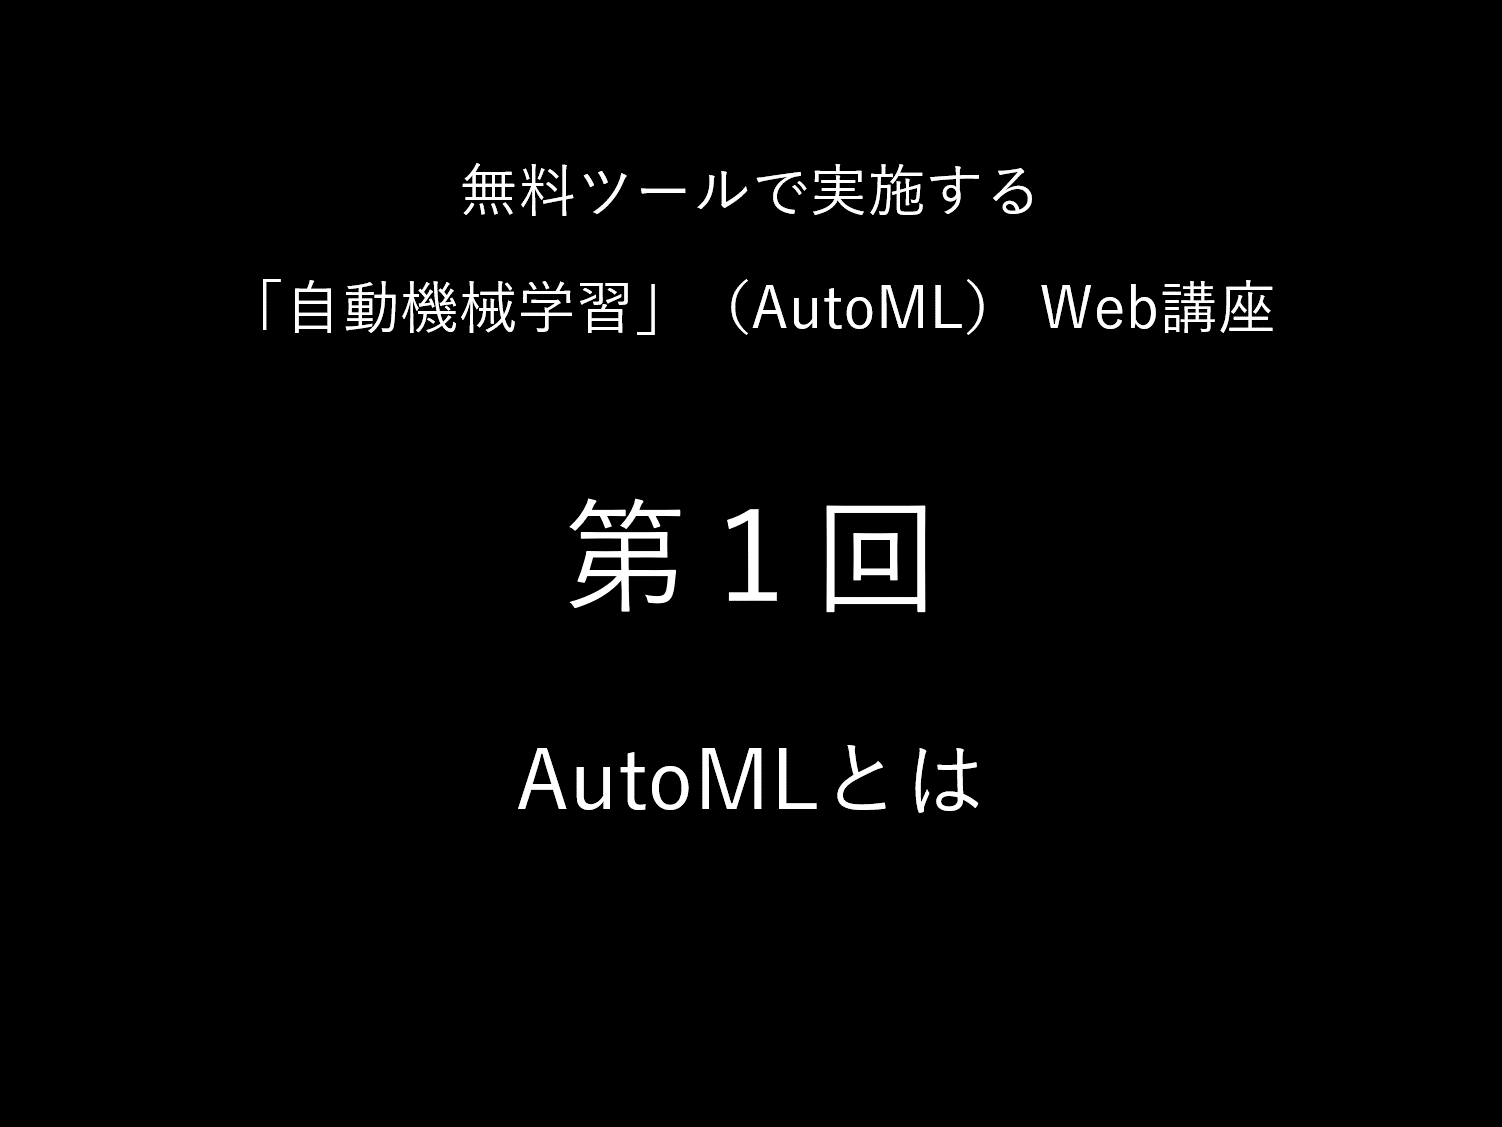 自動機械学習 AutoML(Automated Machine Learning)とは